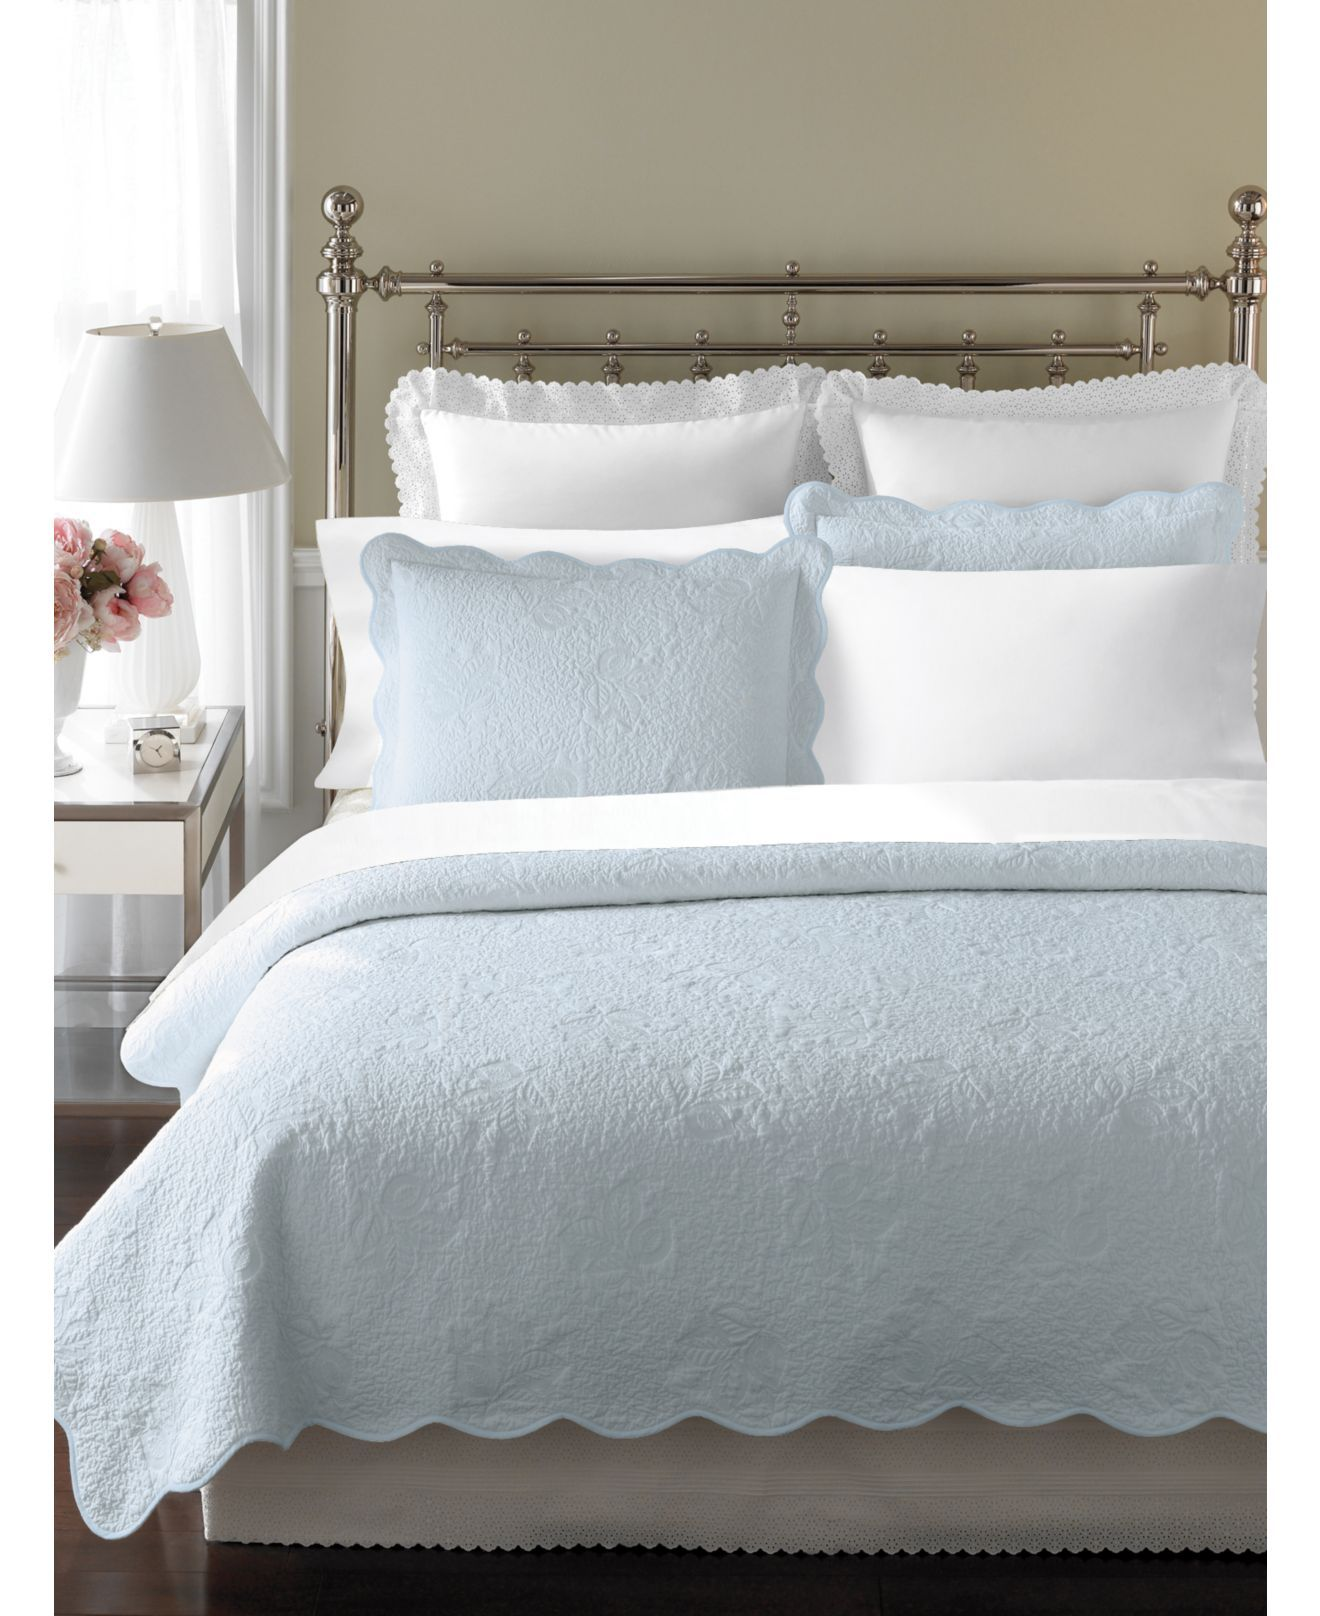 Martha Stewart Collection Bedding, Stenciled Leaves King